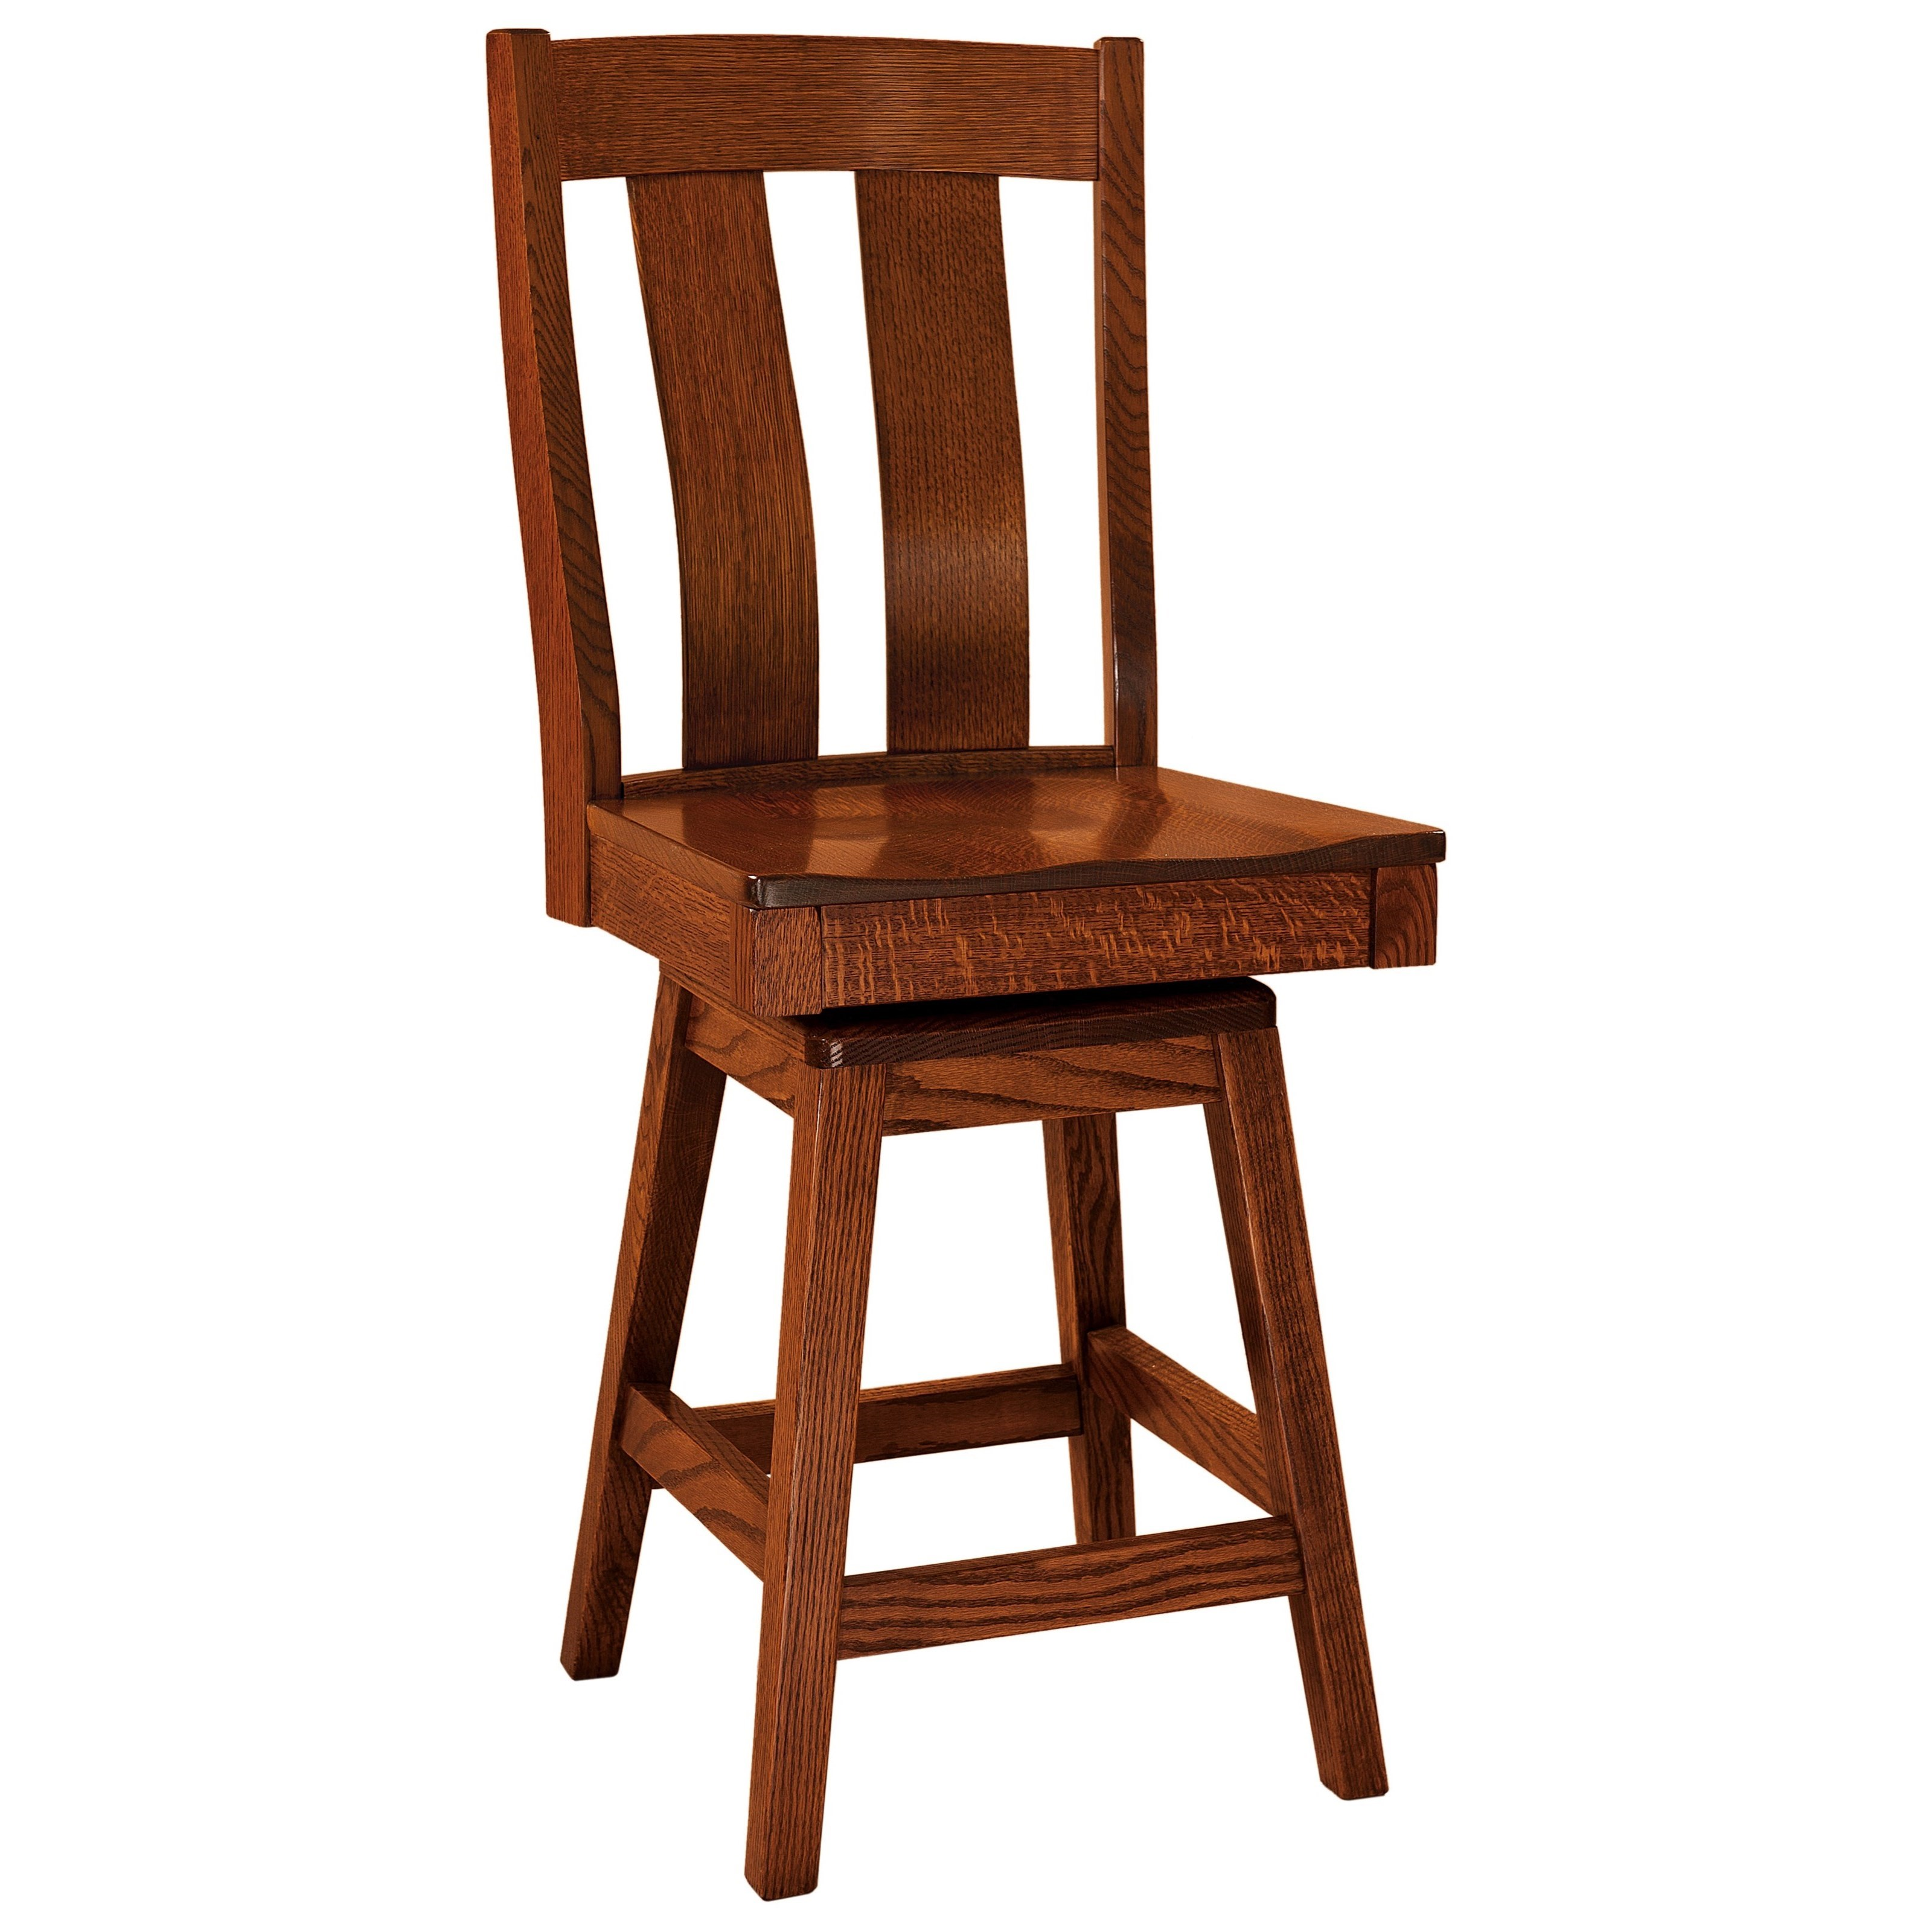 Laurie Swivel Counter Height Stool - Wood Seat by F&N Woodworking at Mueller Furniture